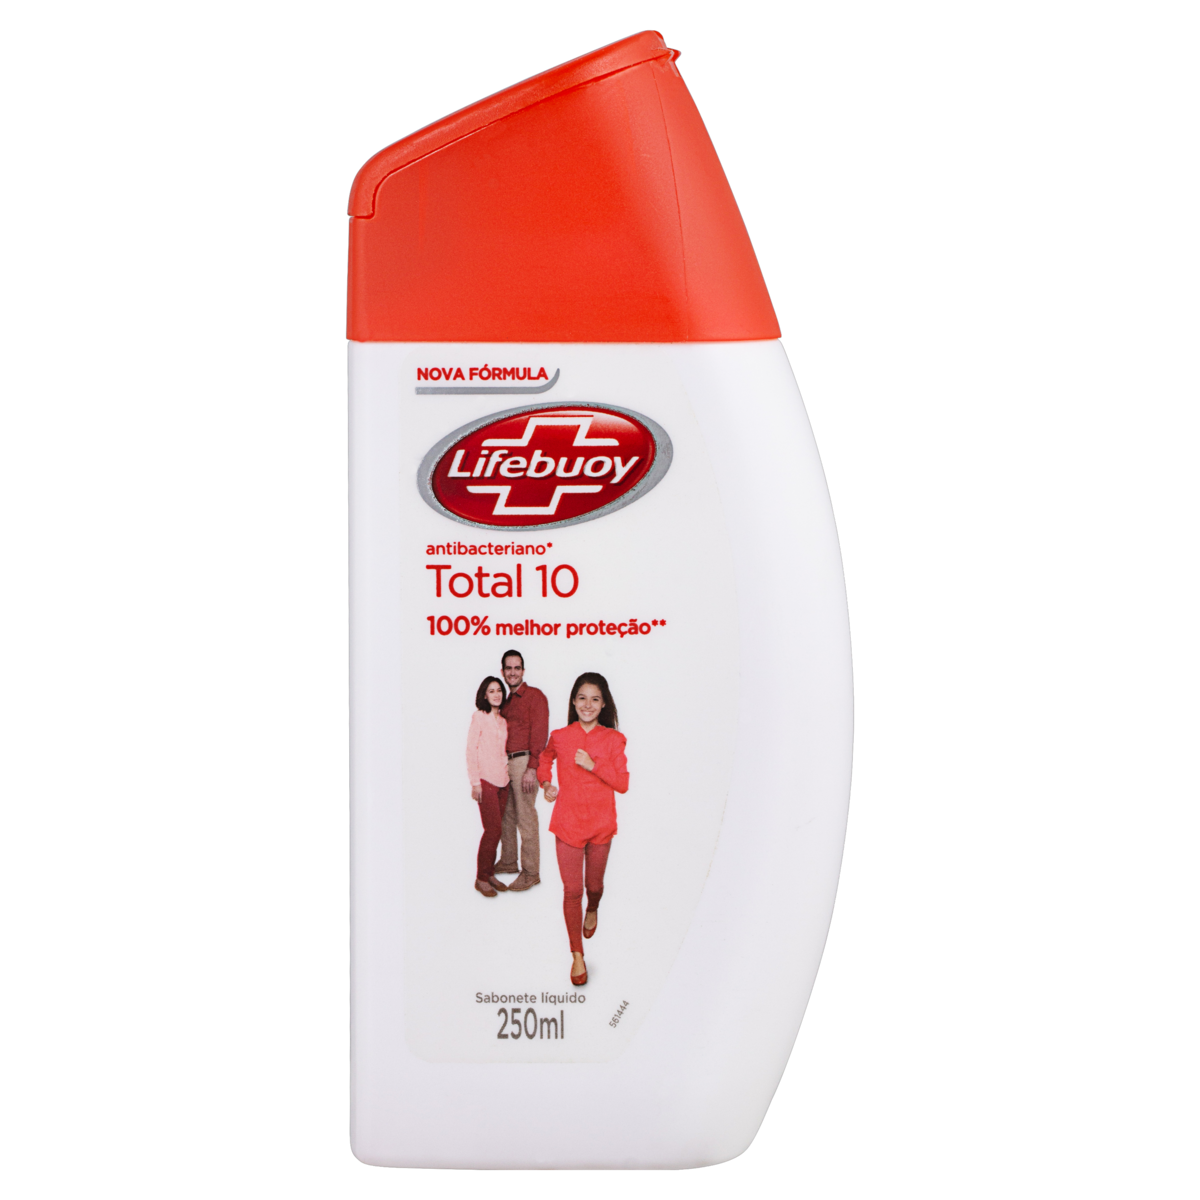 7891150006966 - SABONETE LÍQUIDO ANTIBACTERIANO TOTAL 10 LIFEBUOY FRASCO 250ML